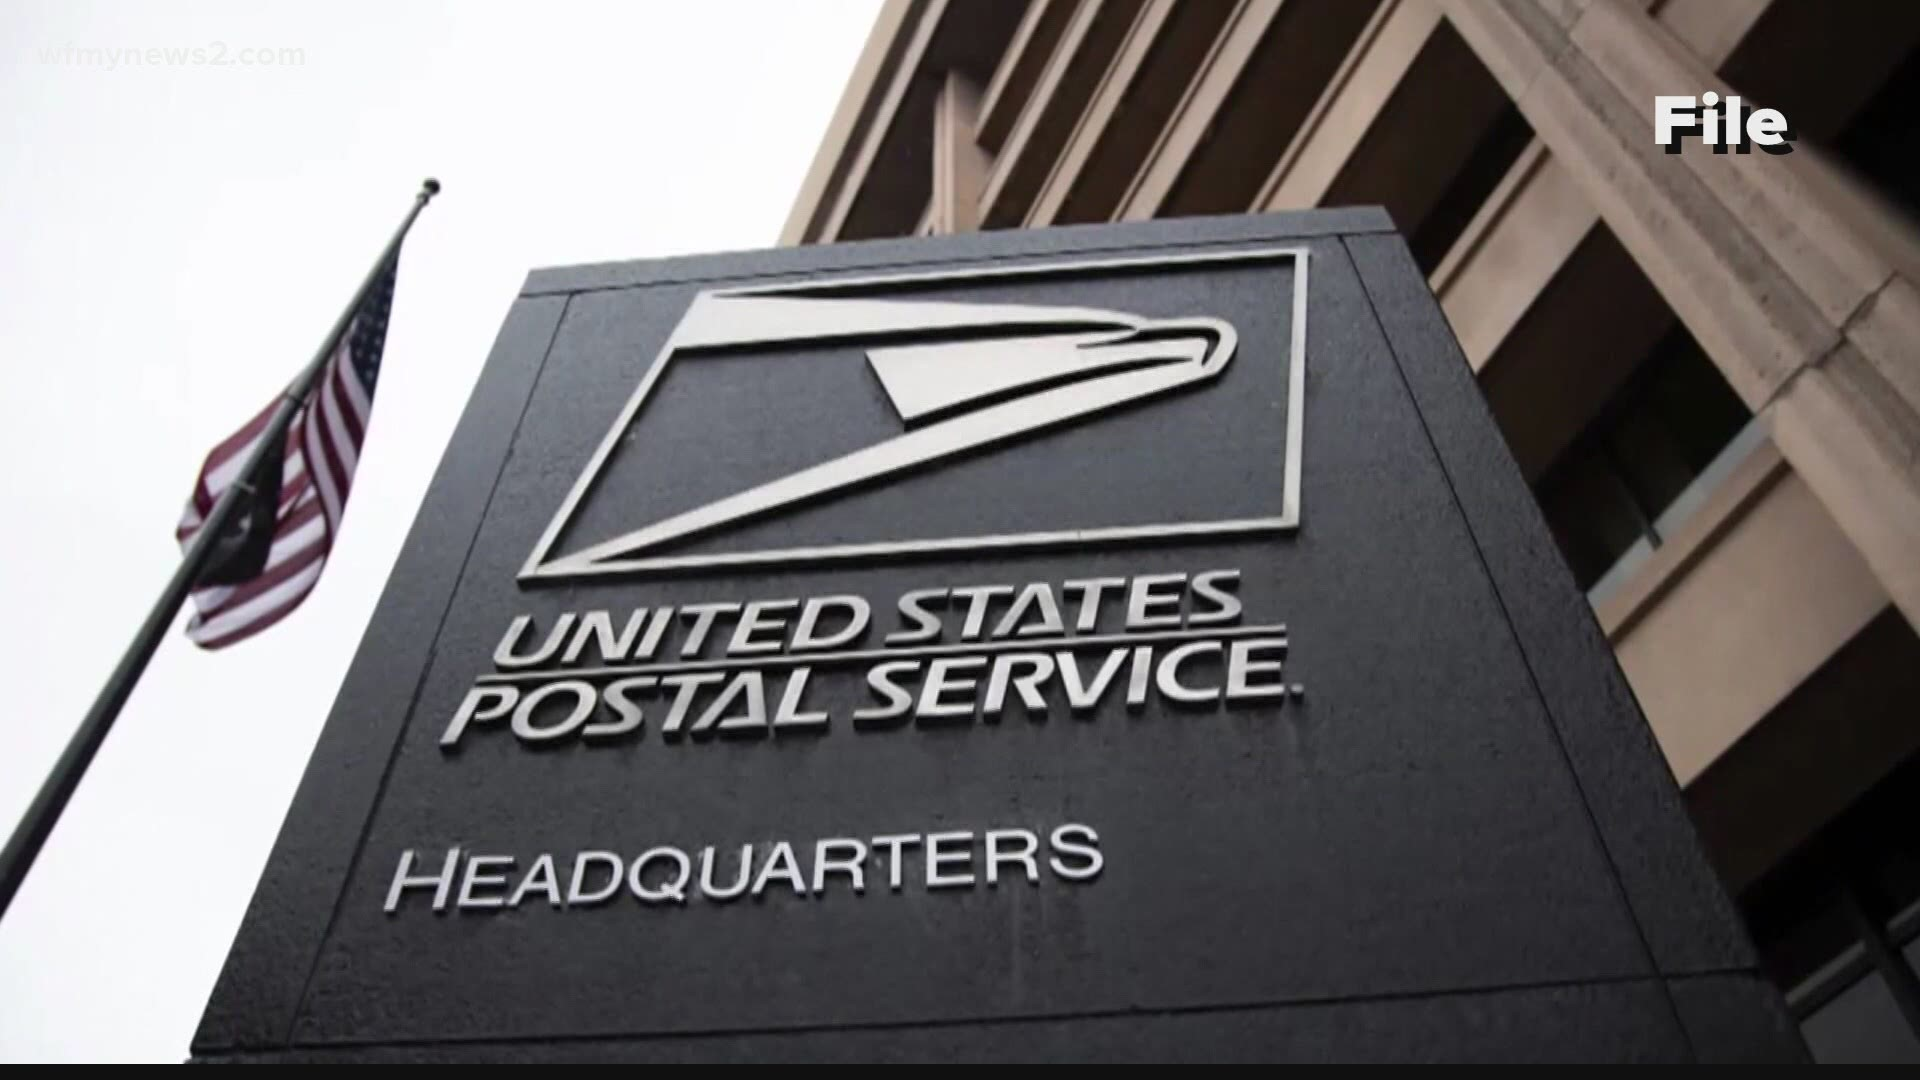 Usps Christmas Eve Hours 2021 W. Peachtree Atlanta Usps Shipping And Mail Delivery Issues Continue Wfmynews2 Com